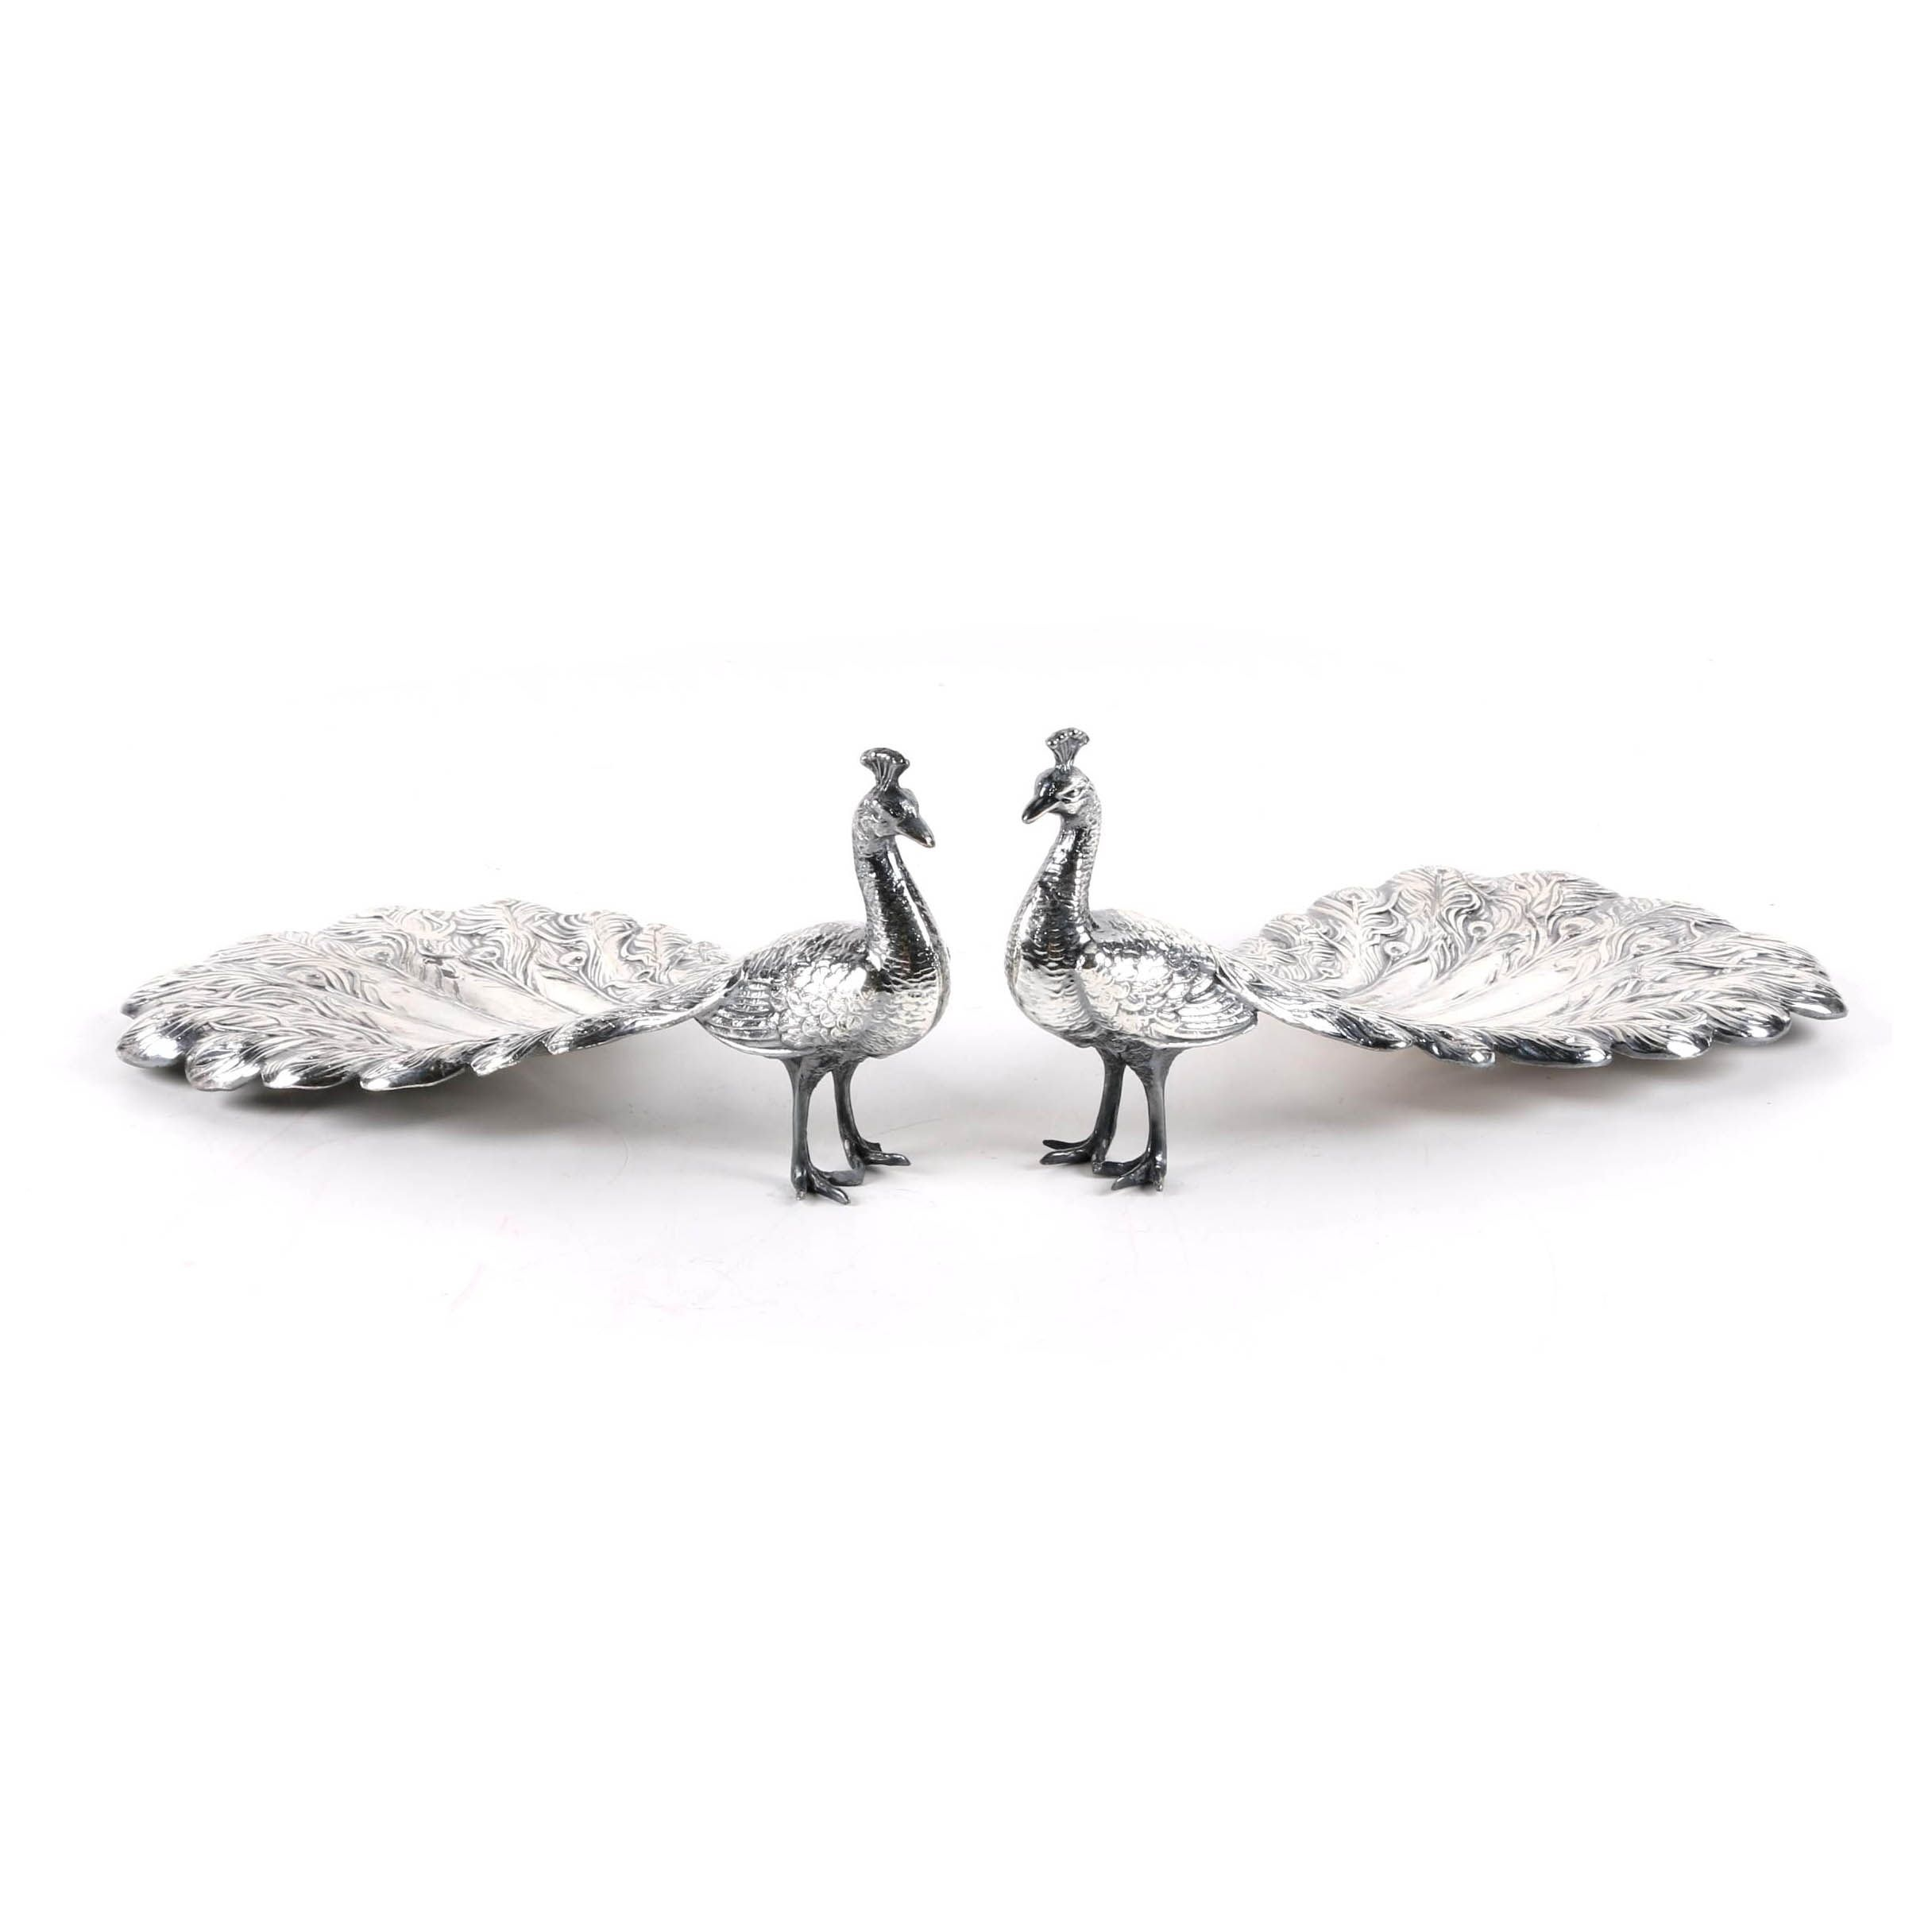 Silver-Plated Peacock Bonbon Dishes